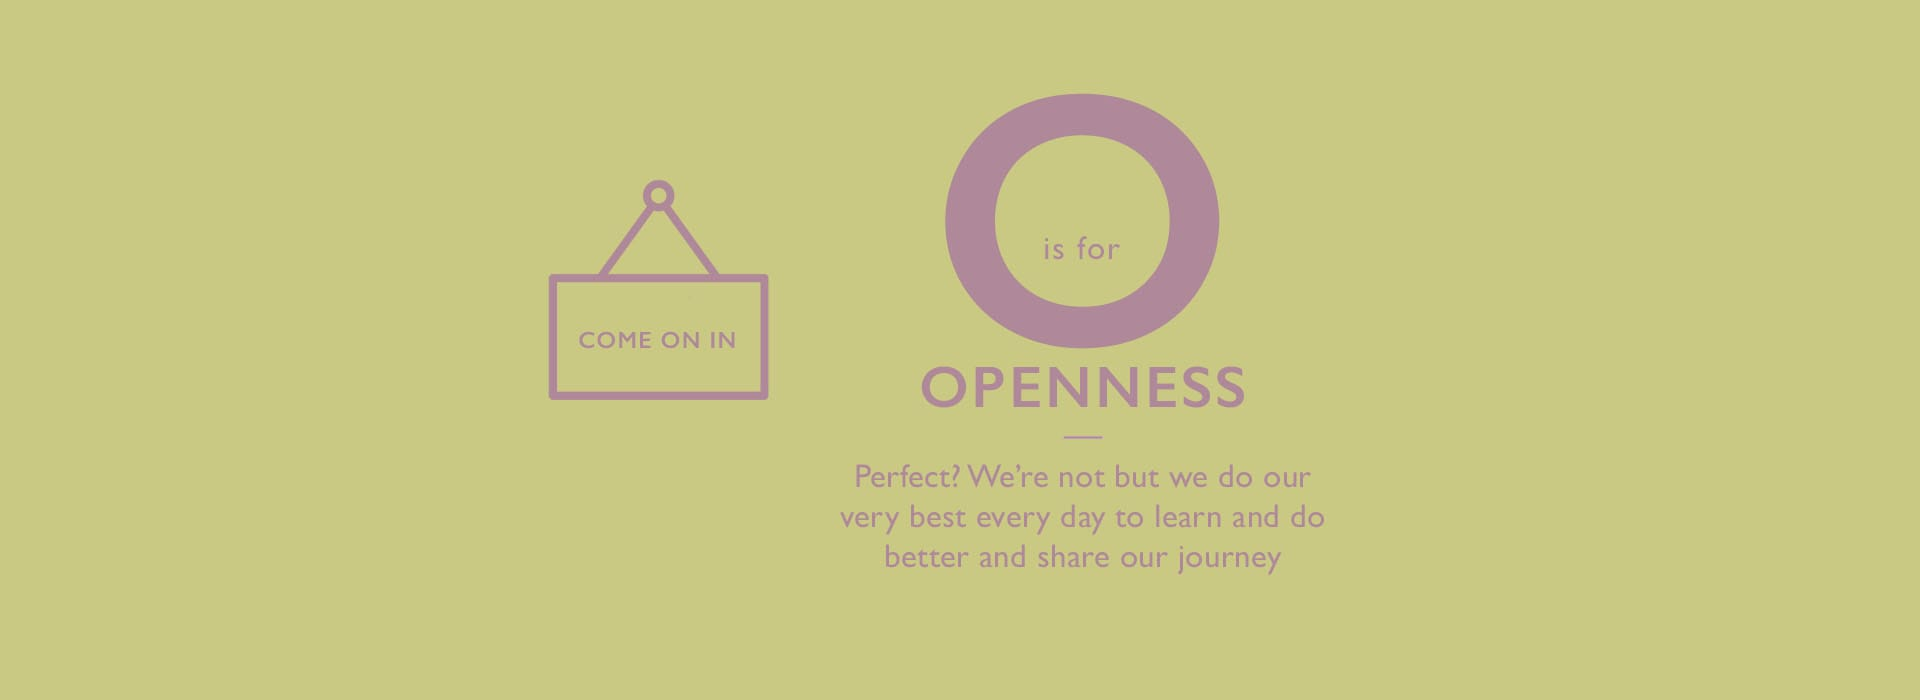 O is for Openness. Perfect? We're not but we do our very best every day to learn and do better and share our journey